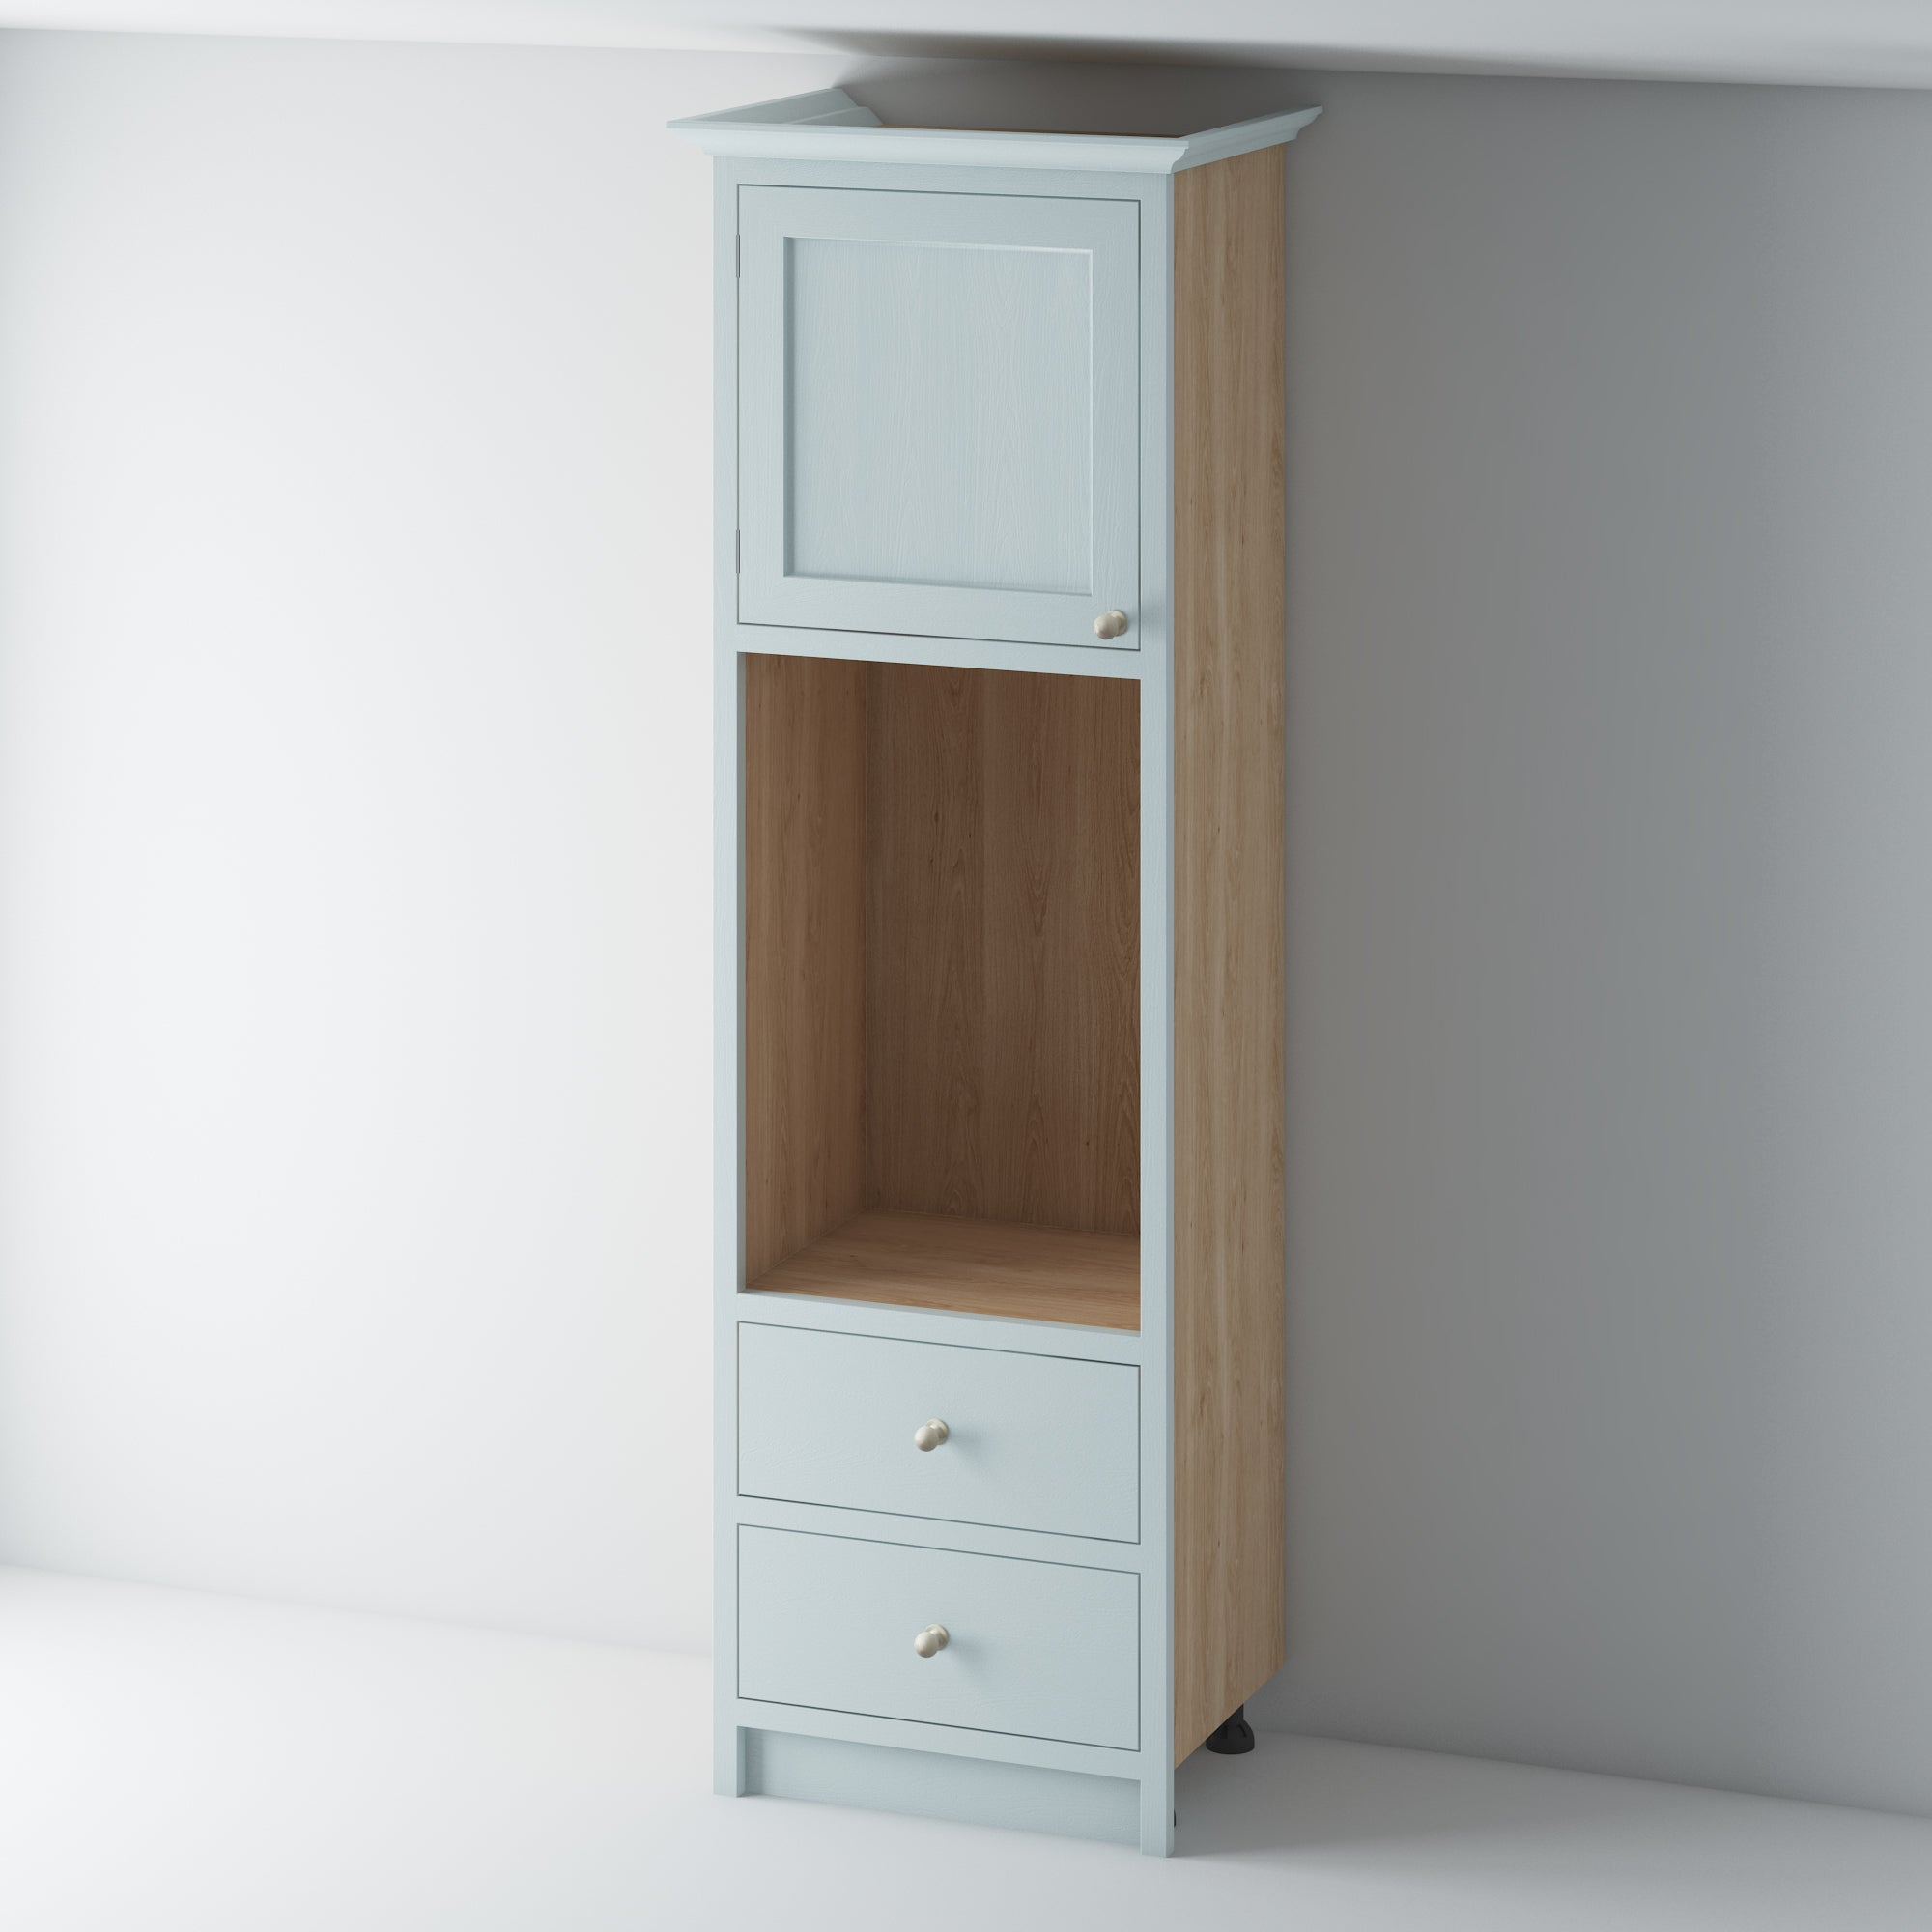 Oven Full Height Cabinet 678